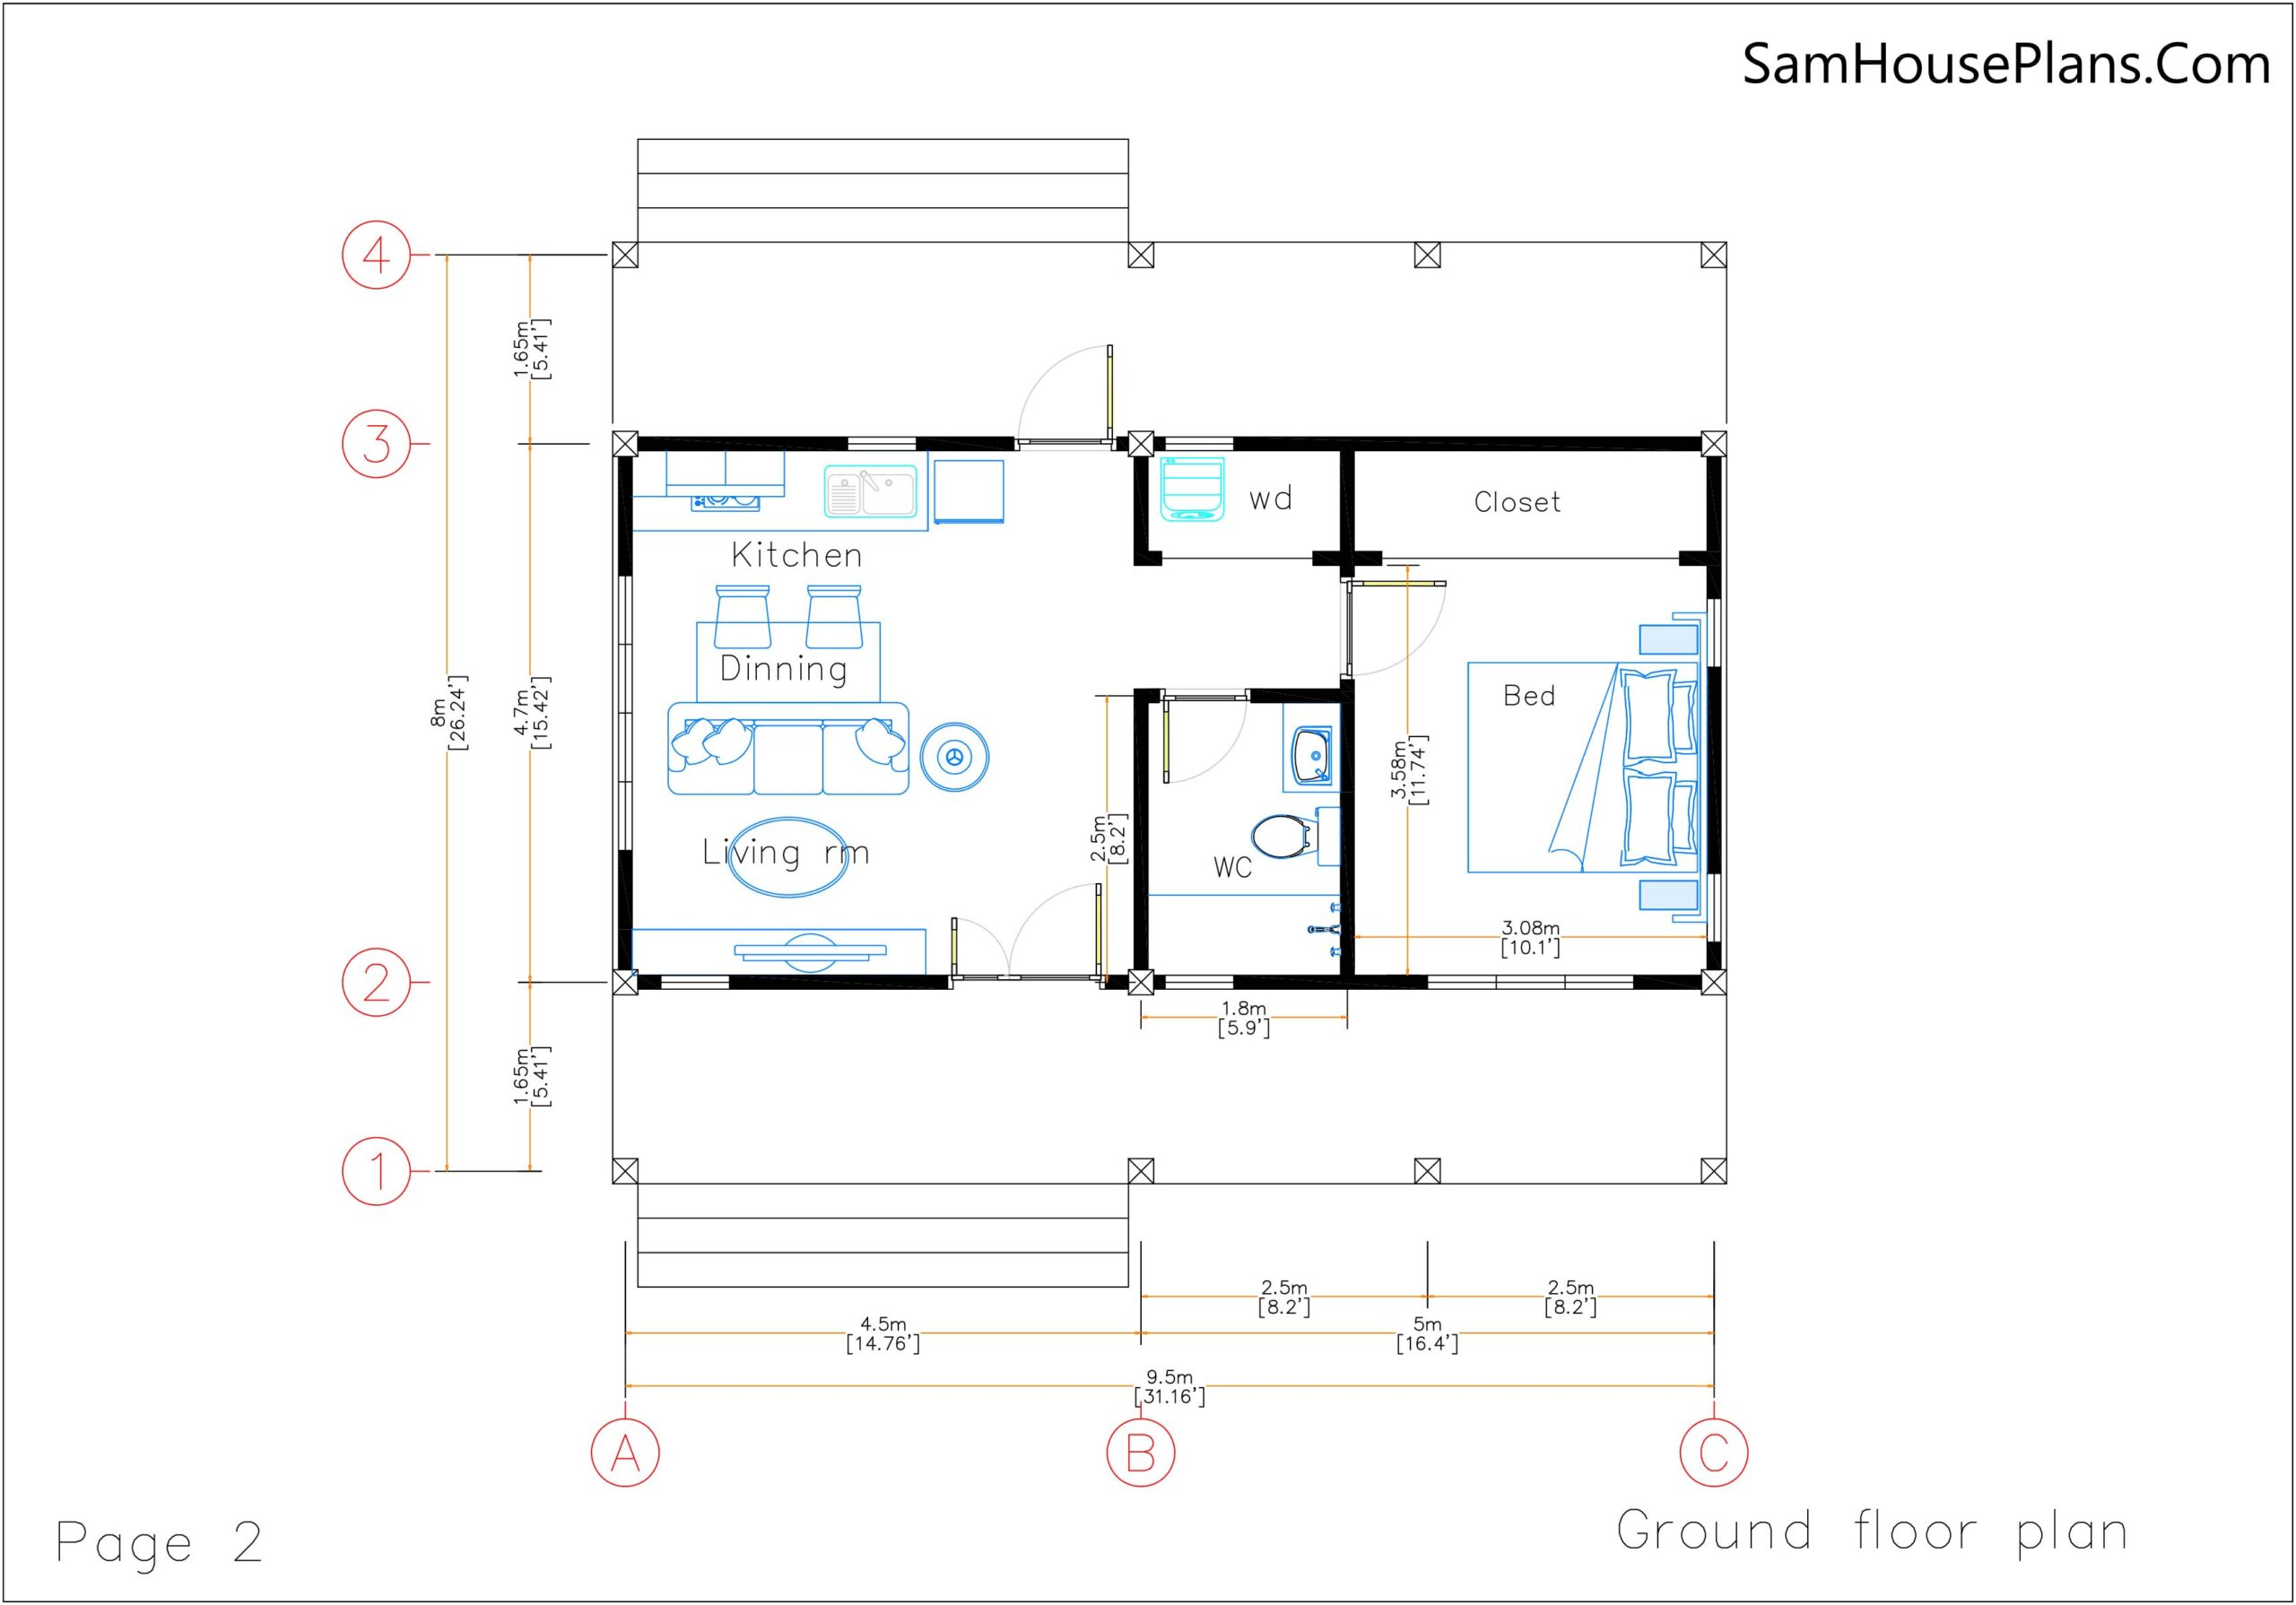 Small House Plans 32x16 Shed Roof 1 Bed PDF Plan Layout floor plan